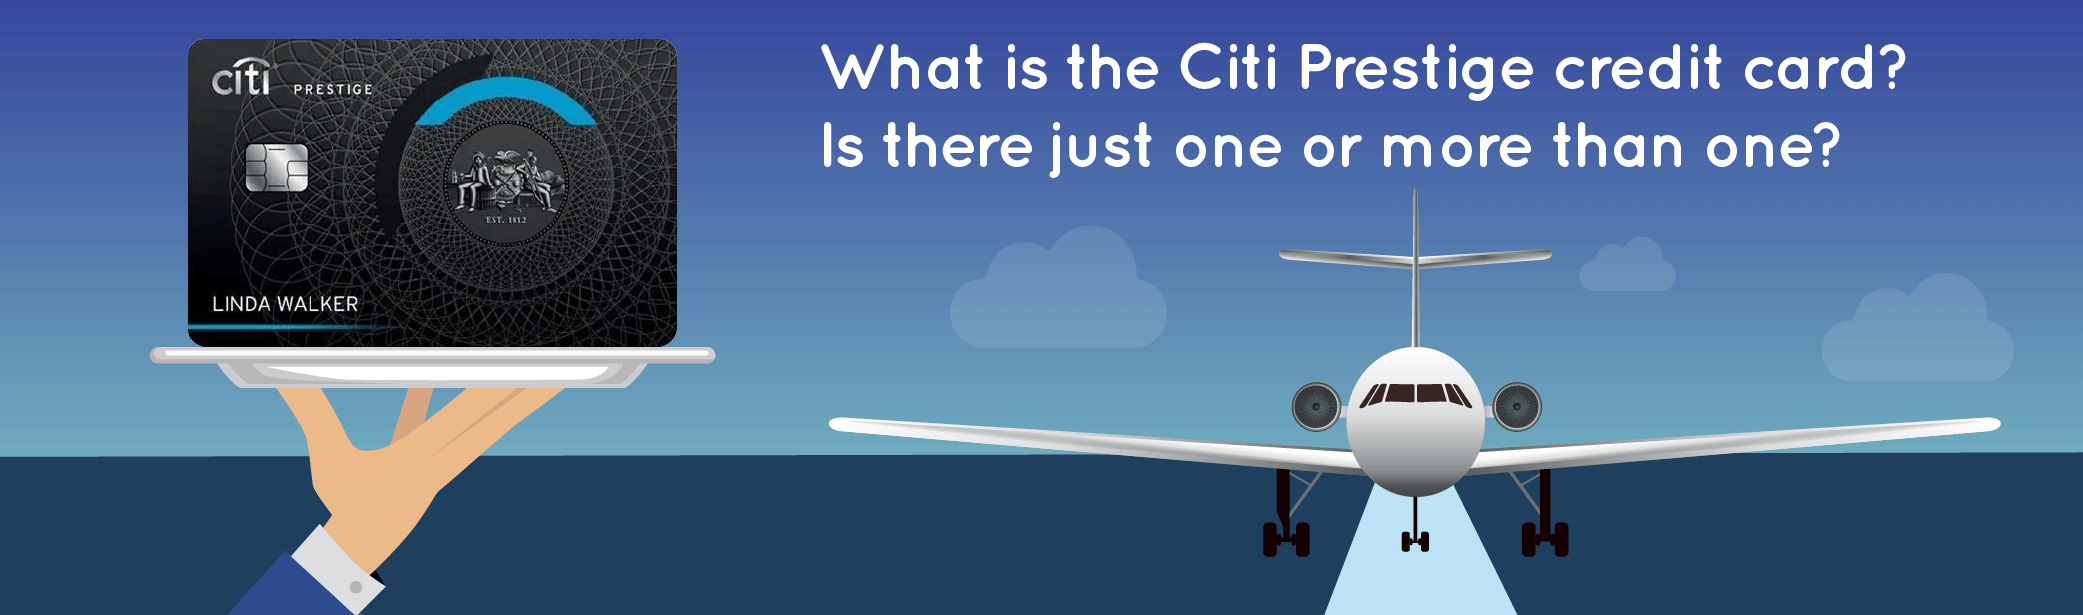 What is the Citi Prestige credit card?